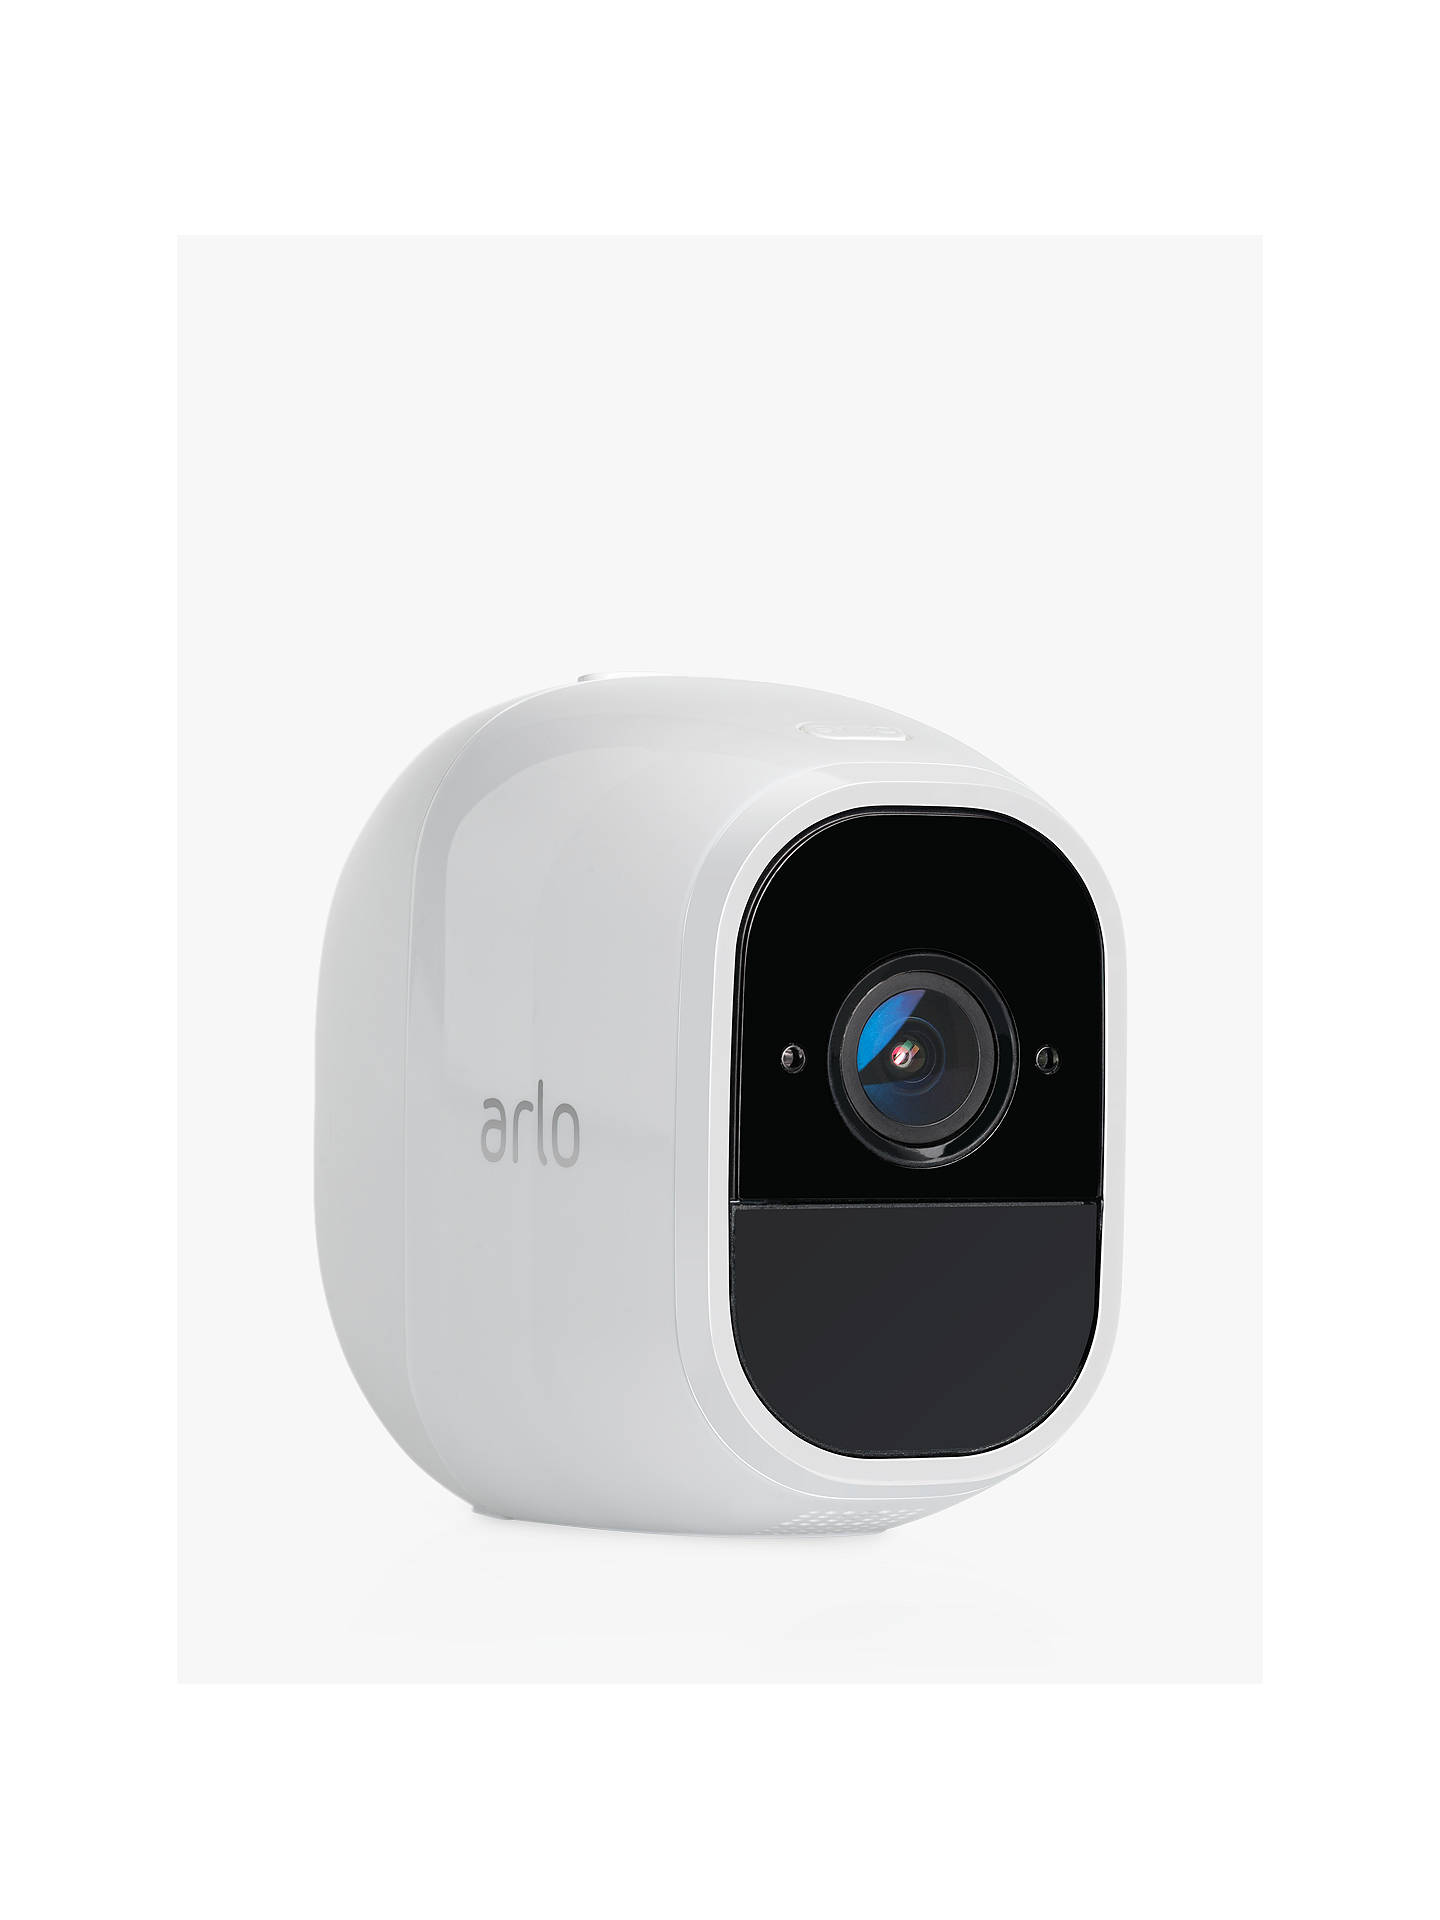 Netgear Arlo Pro 2 Smart Security System with Two Full HD Cameras, White